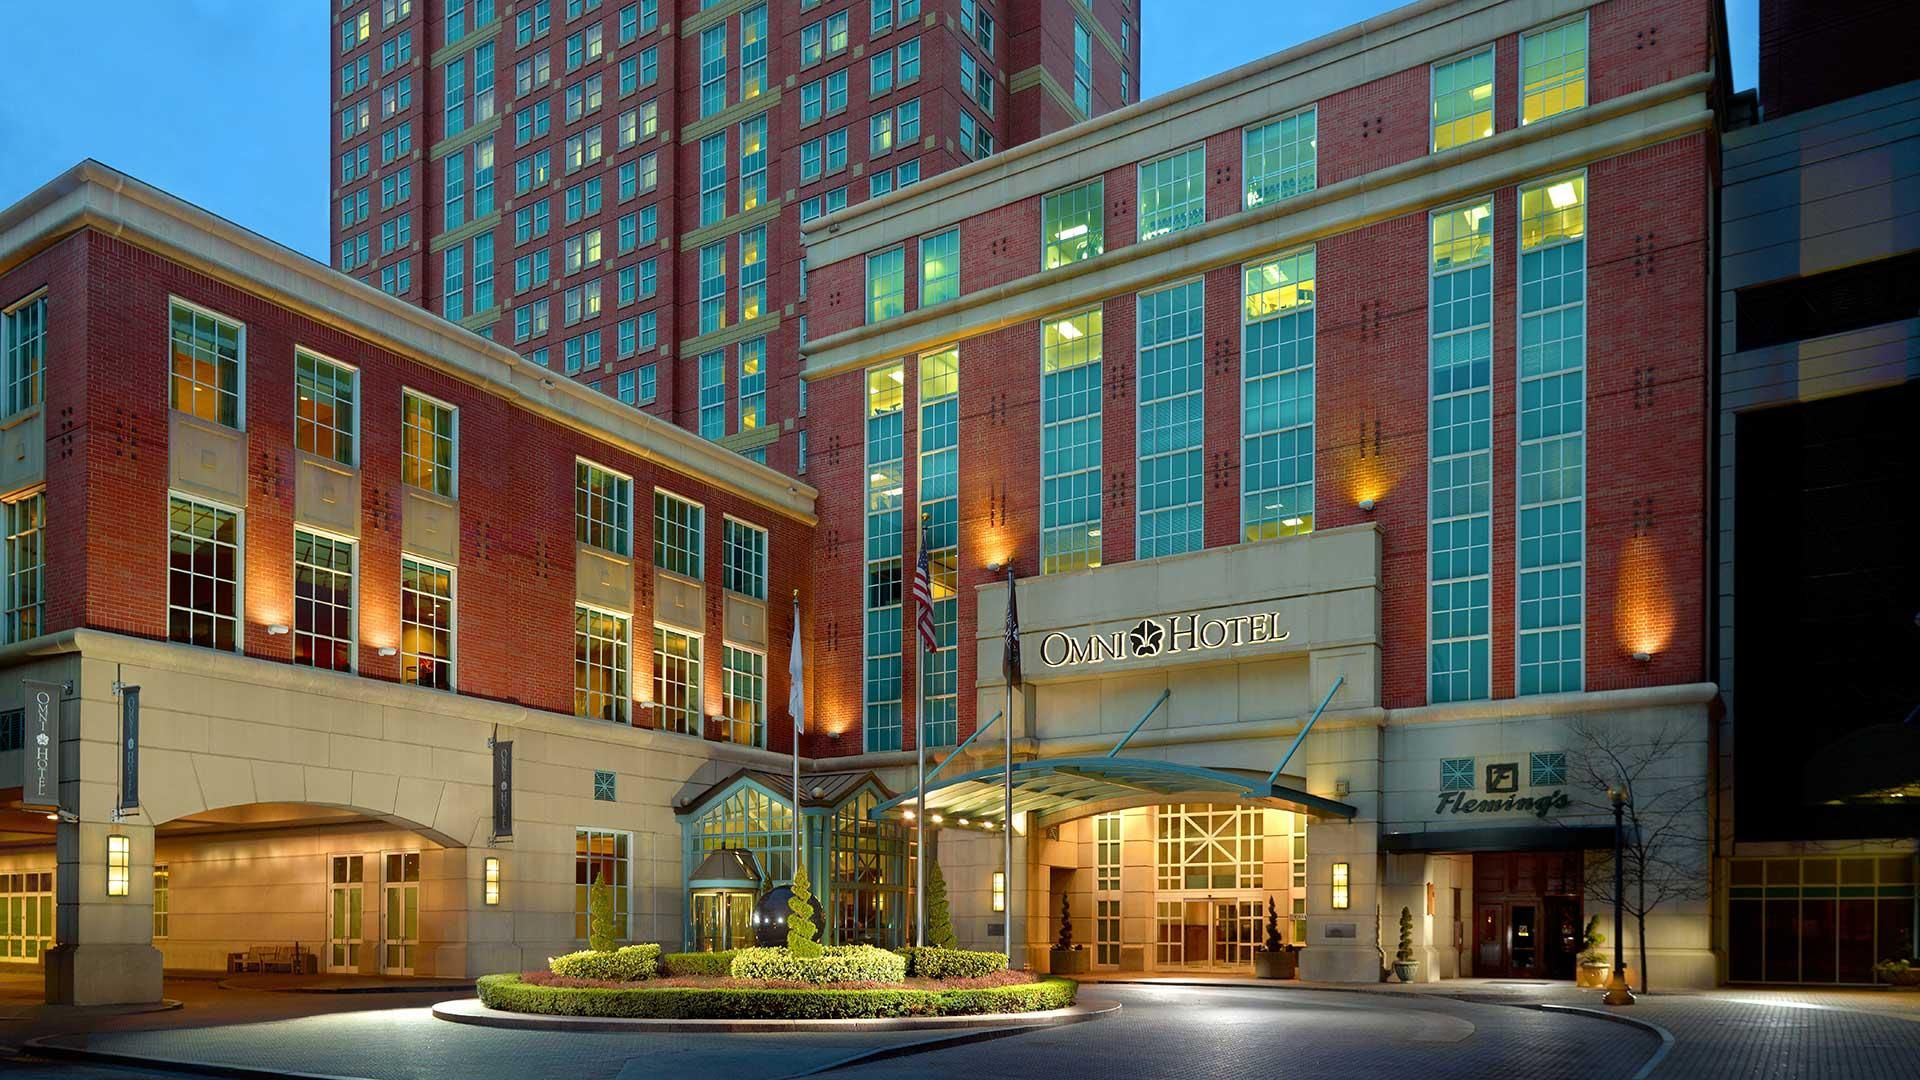 Downtown providence hotel connected to rhode island